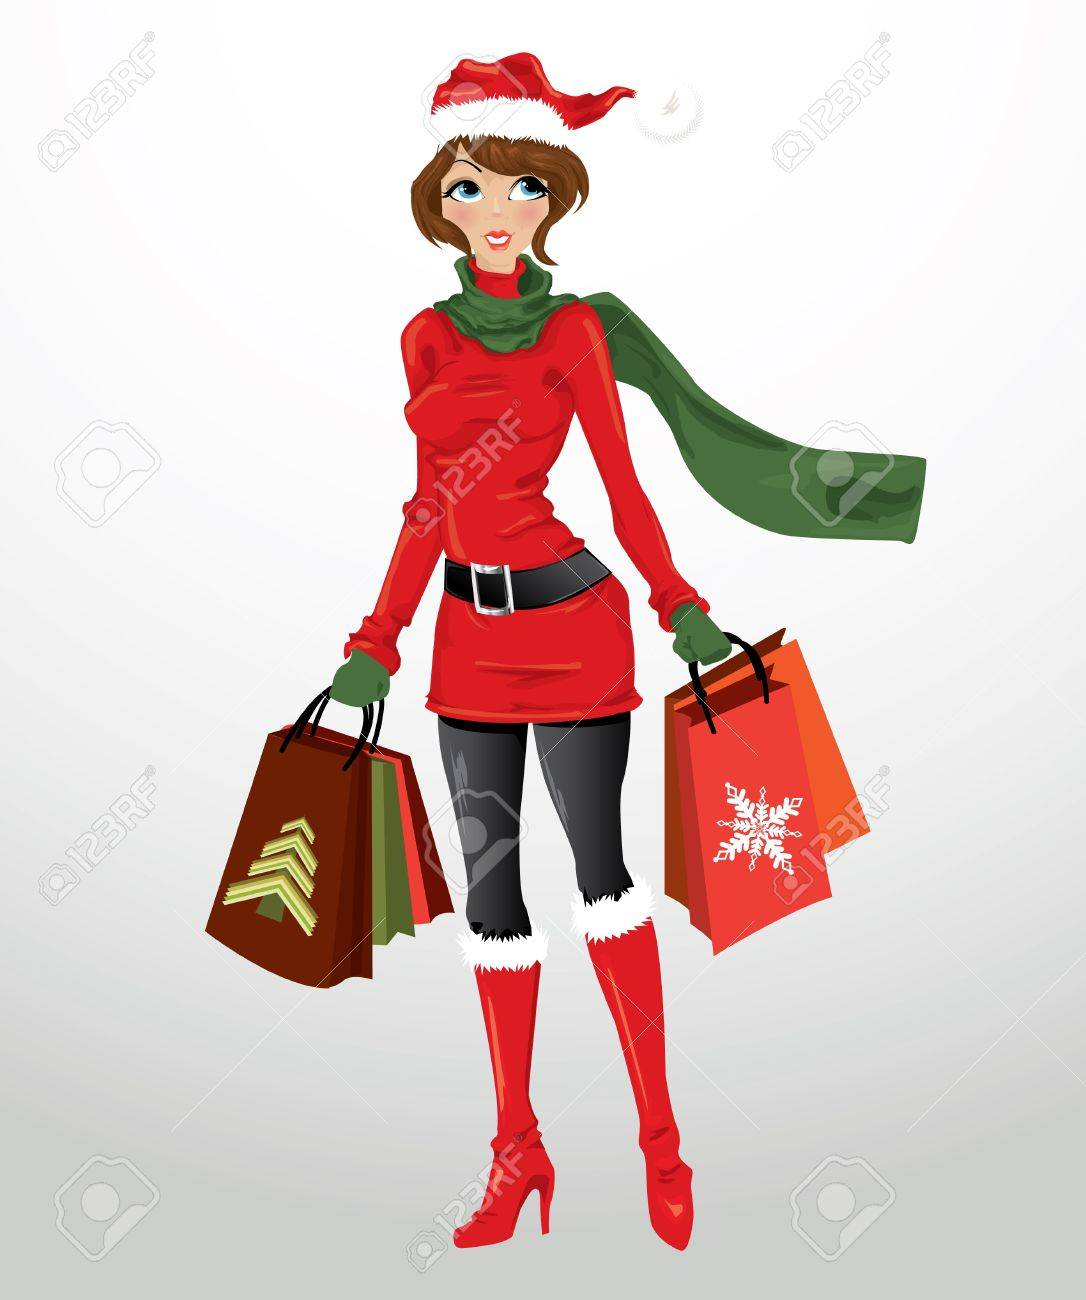 Woman with shopping bags - 11439896